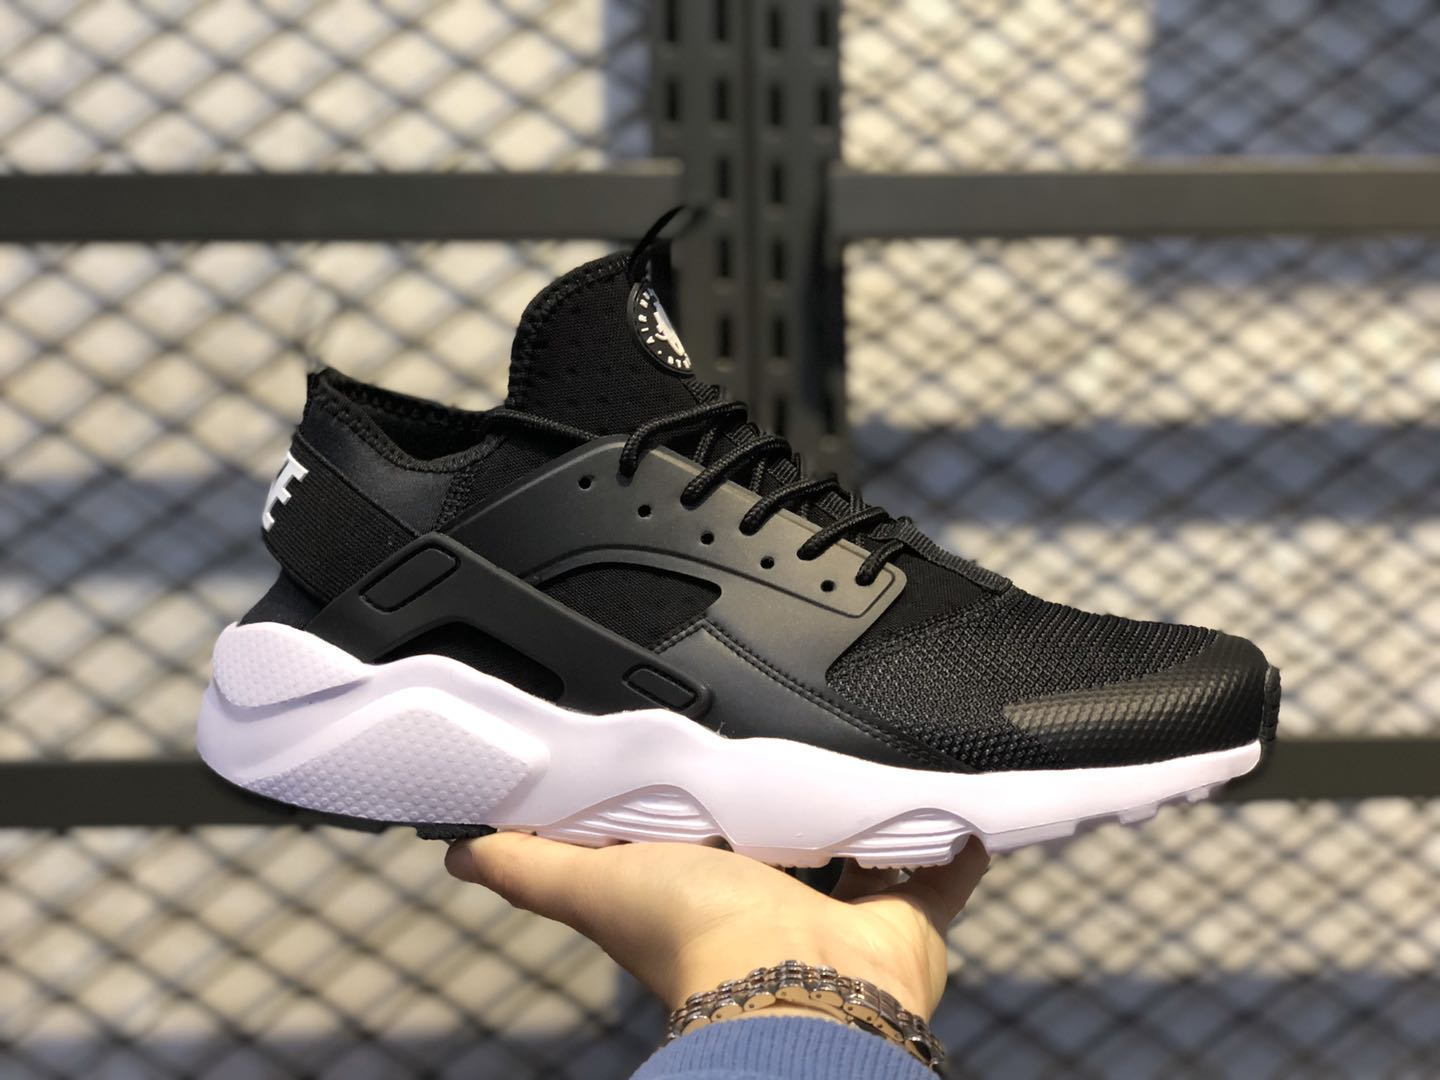 Nike Air Huarache Run Ultra Black White Hot Selling 819685-01